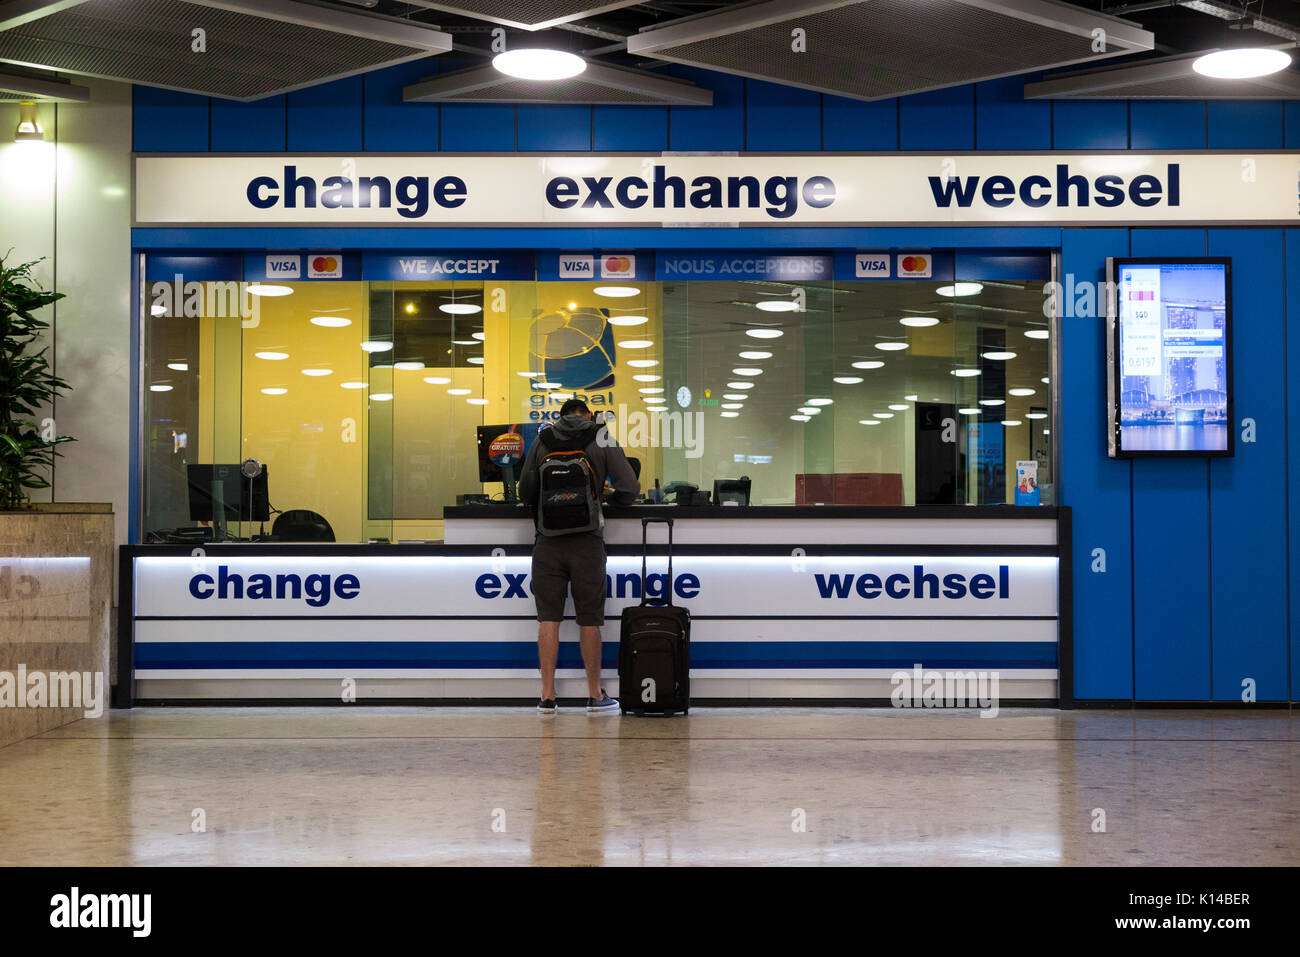 Foreign exchange rates airport stock photos foreign for Bureau exchange